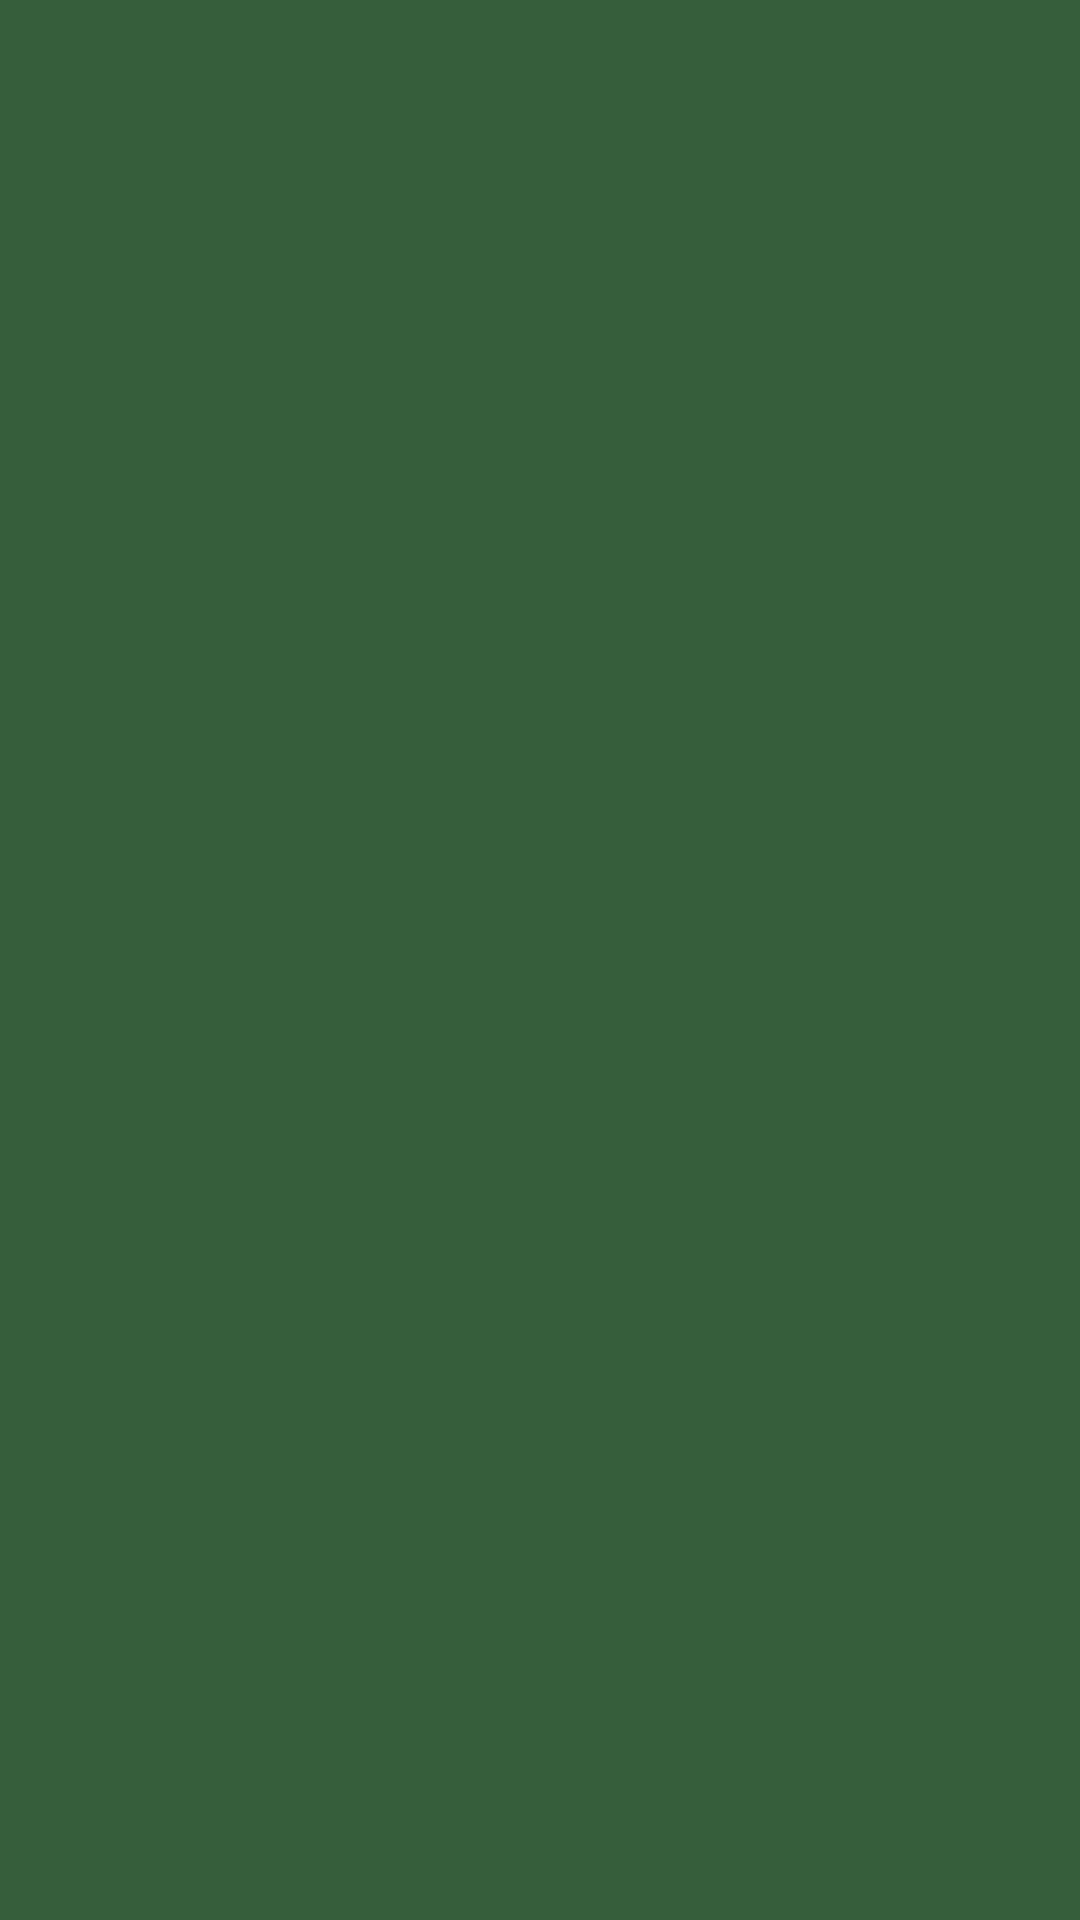 1080x1920 Hunter Green Solid Color Background